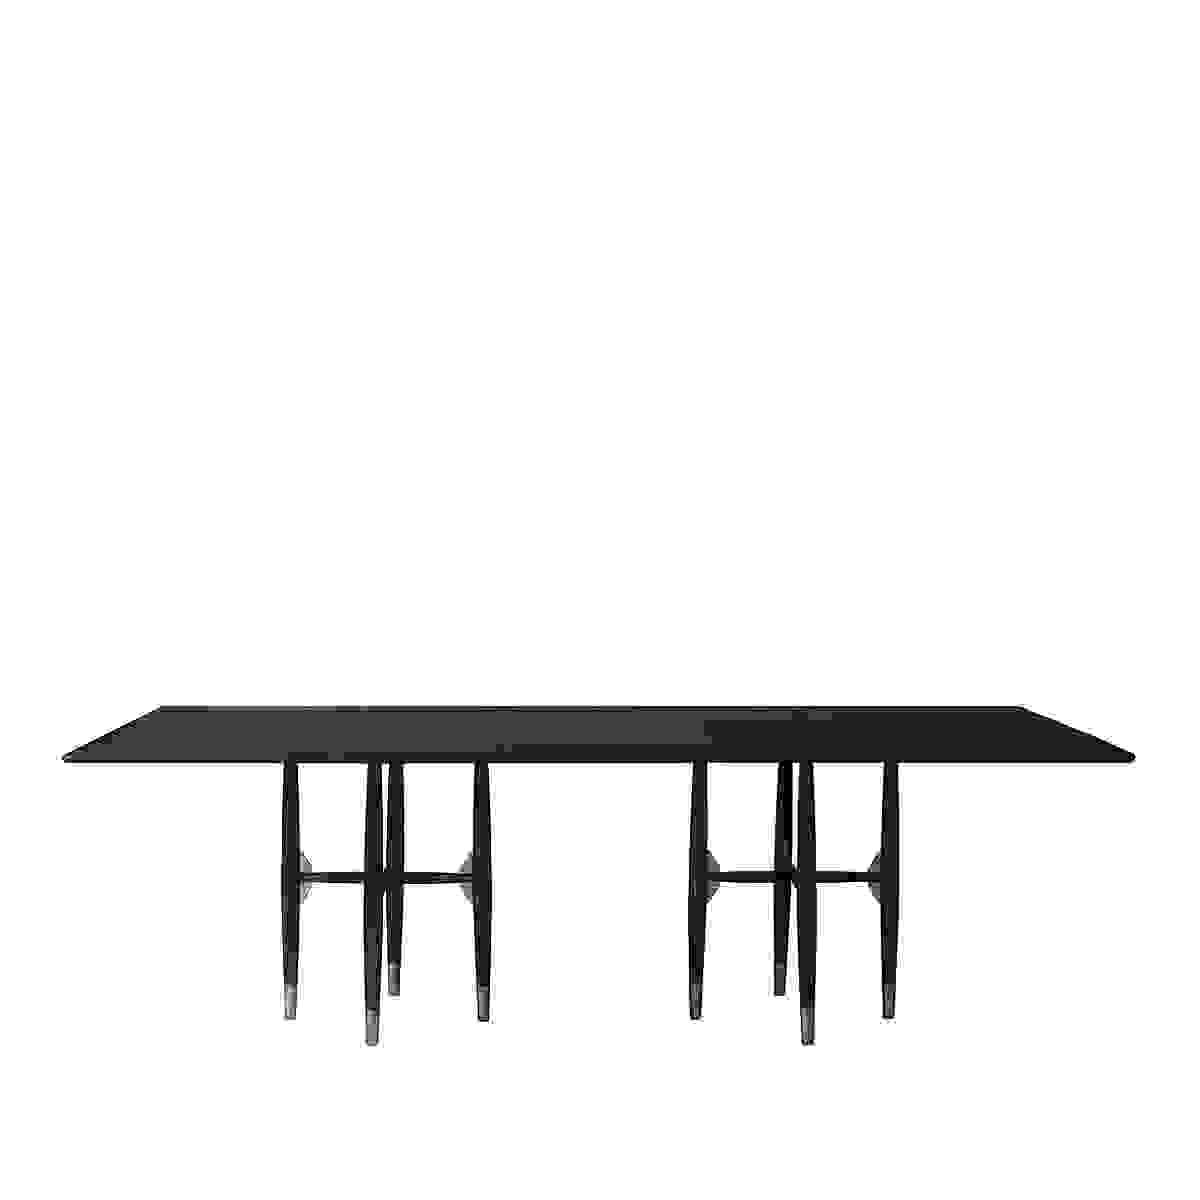 coleccion-alexandra-the-one-collection-sou-table-04.jpg